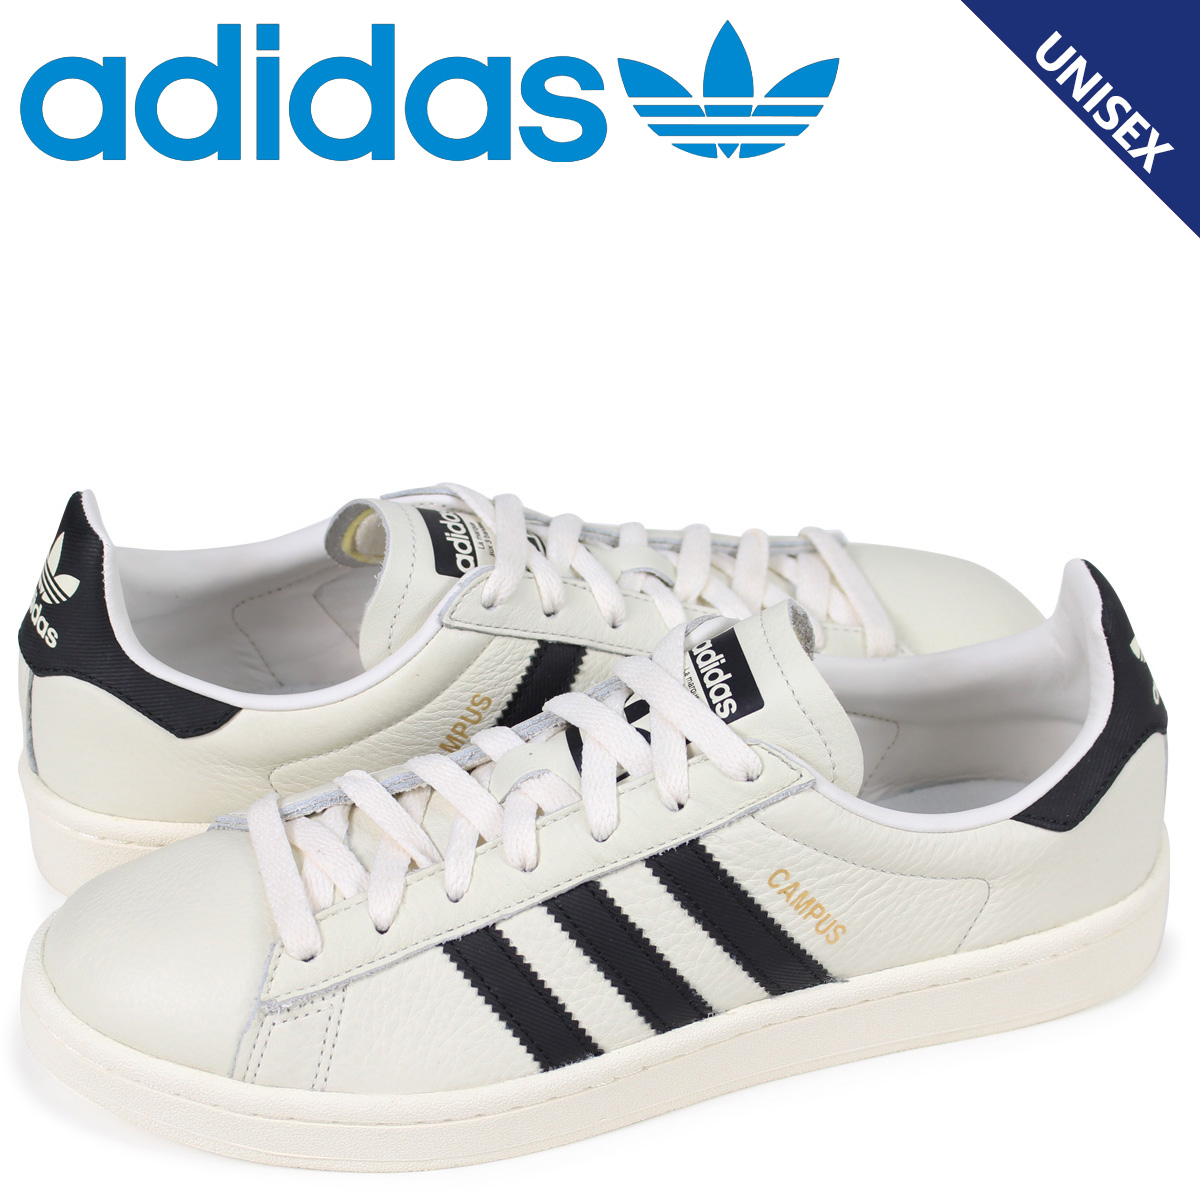 Brand Adidas. Sneakers for men - popular products